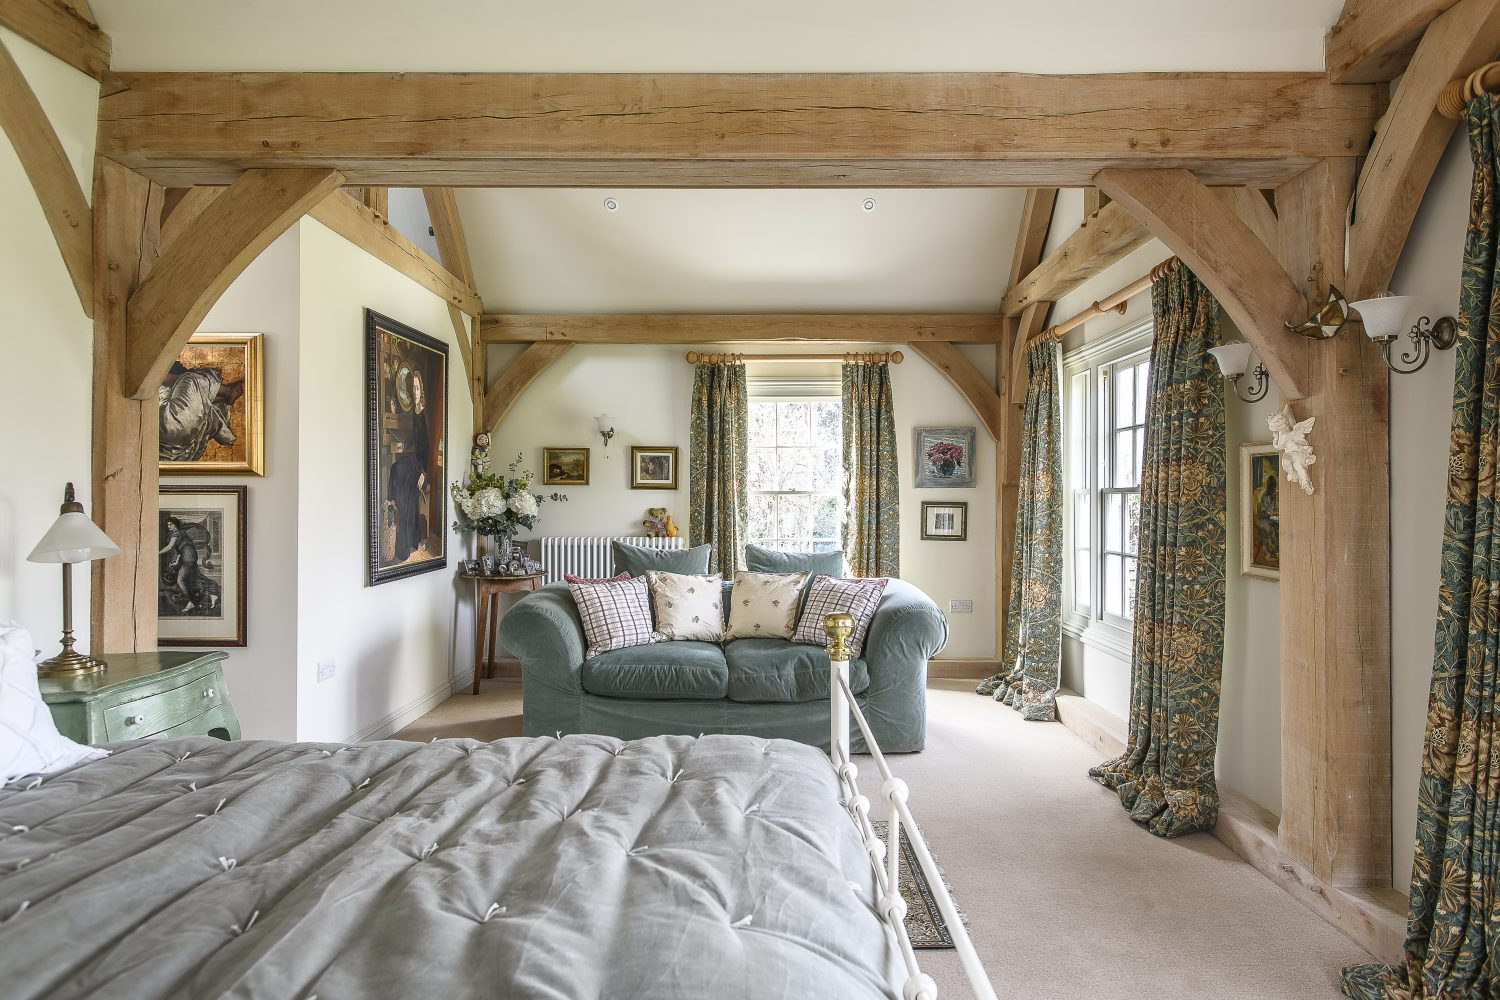 The master bedroom is situated in the two storey extension that Tim and Eve added to the house. The oak frame was made by Paul Cresswell from Sackville Oak Frames, taking around nine weeks to construct in his Kentish workshop, but just three days to install on site